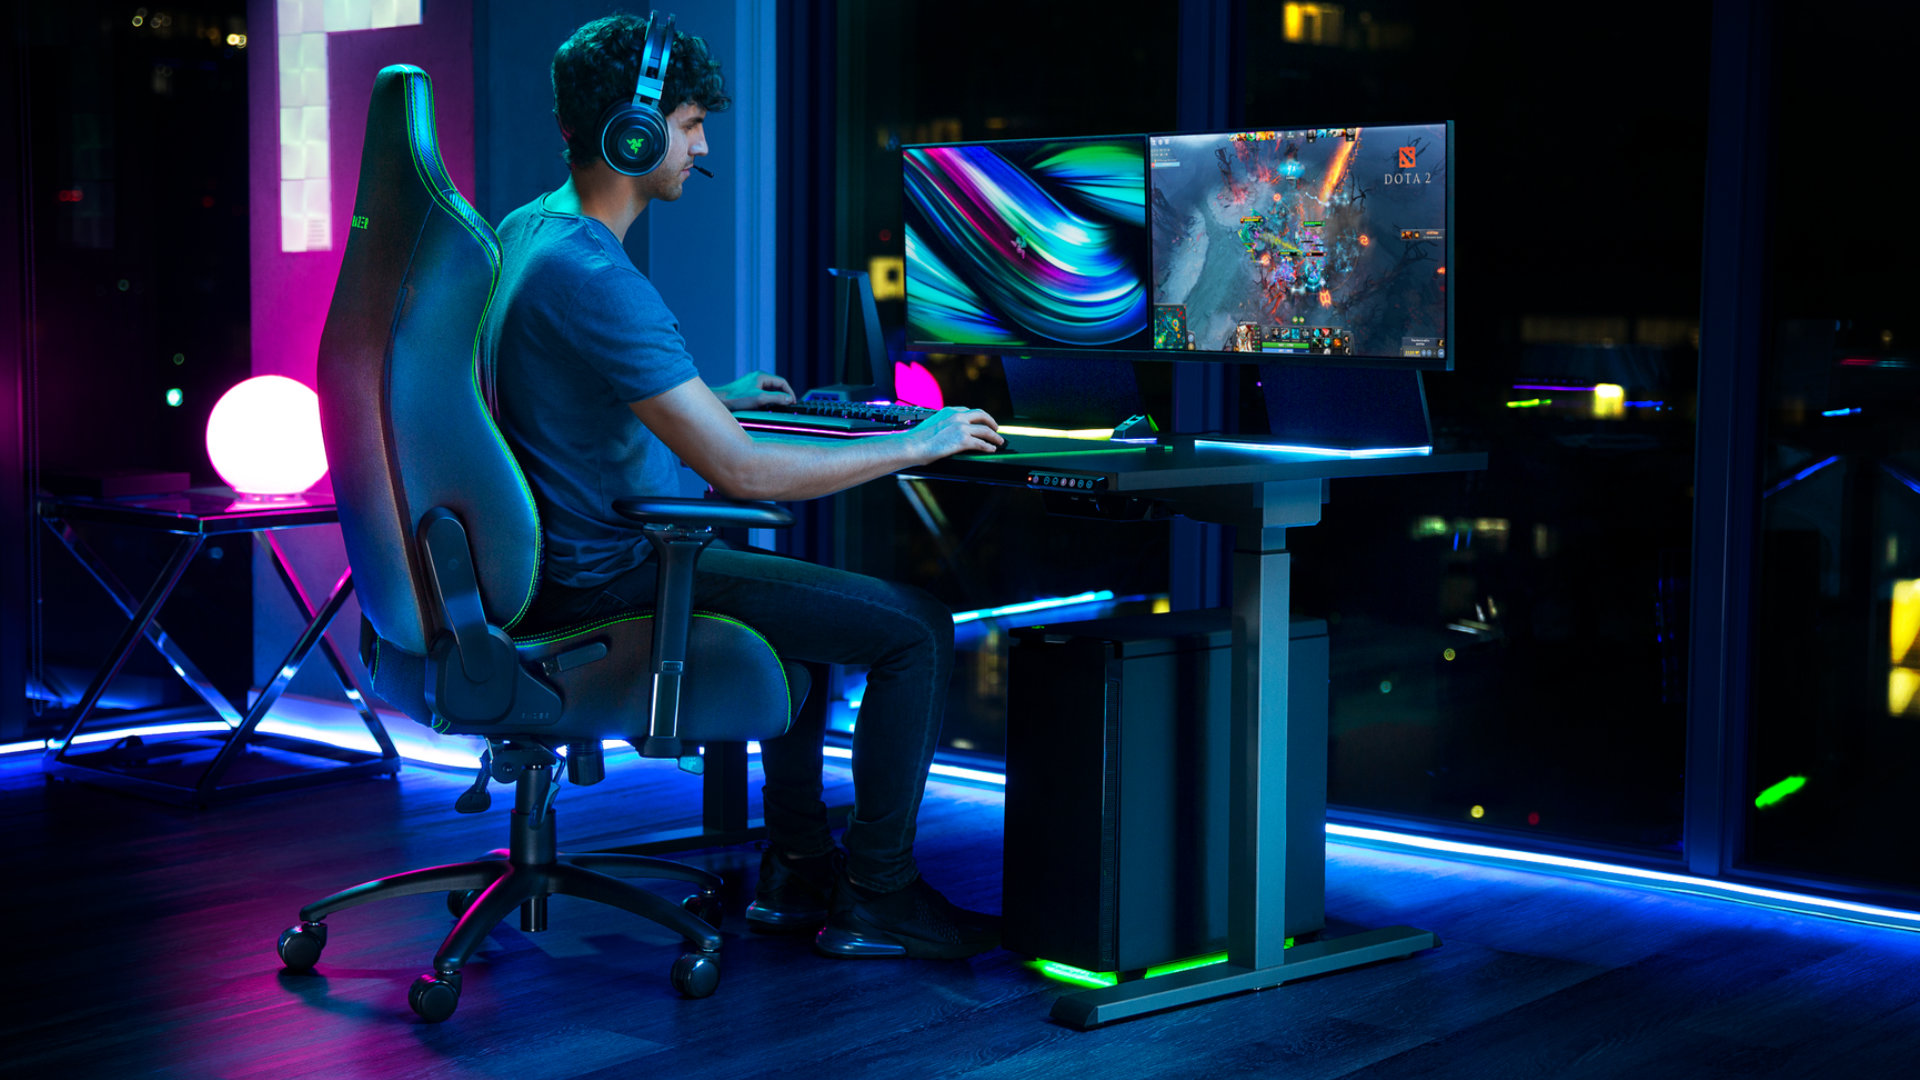 Best gaming chair 2021 – the top chairs to perch your posterior on